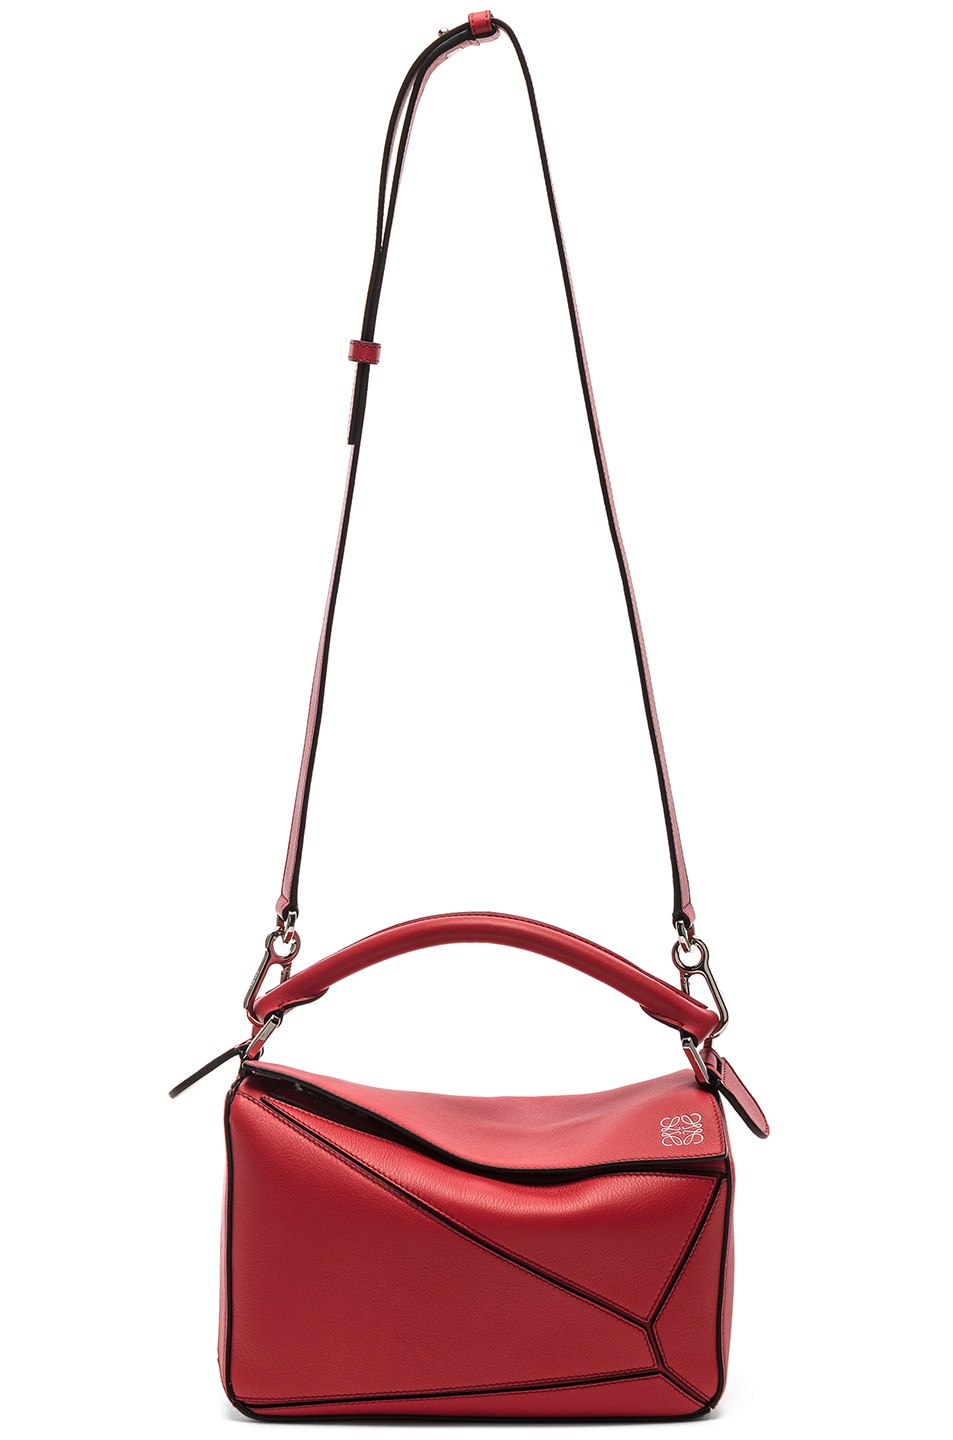 Image 6 of Loewe Puzzle Small Bag in Scarlet Red